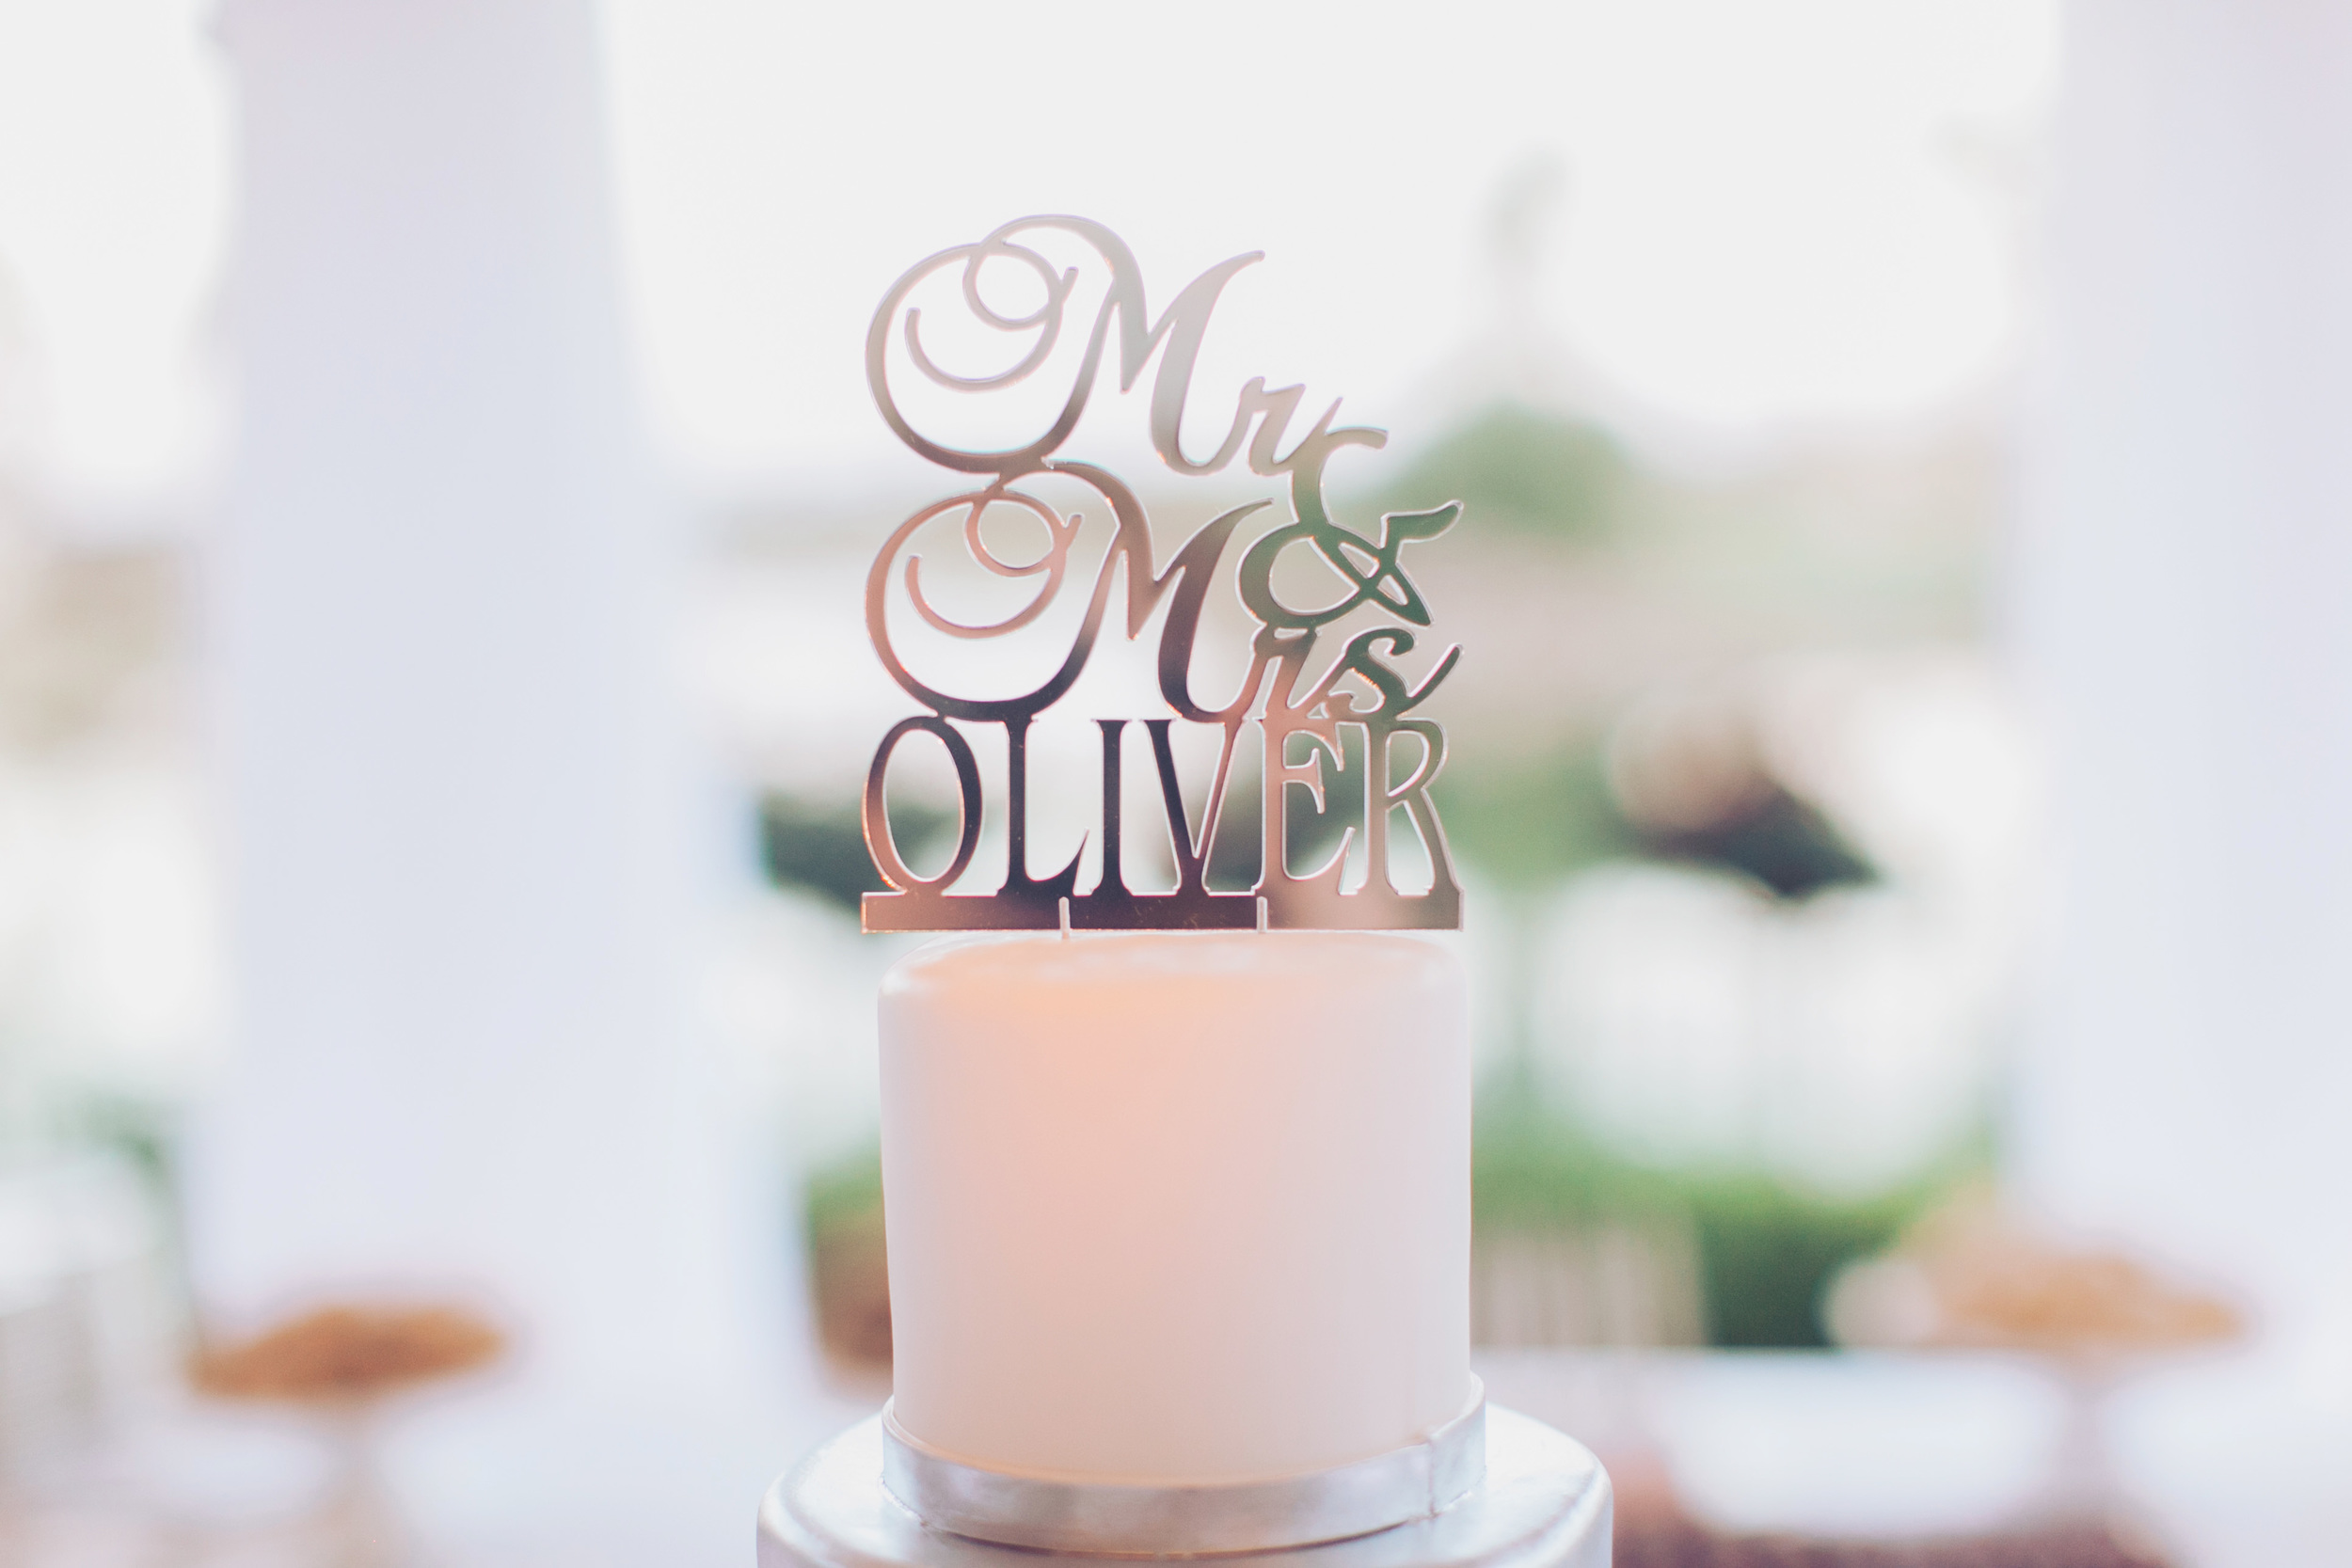 The top of the wedding cake featured a Mr. & Mrs Oliver cake topper.  Stephanie Di Lallo married  Justin Oliver at a water front  wedding at The Westin Lake Las Vegas.     Las Vegas Wedding Planner Andrea Eppolito   Wedding at Lake Las Vegas   White and Blu  sh and Grey Wedding   Luxury Wedding Las Vegas